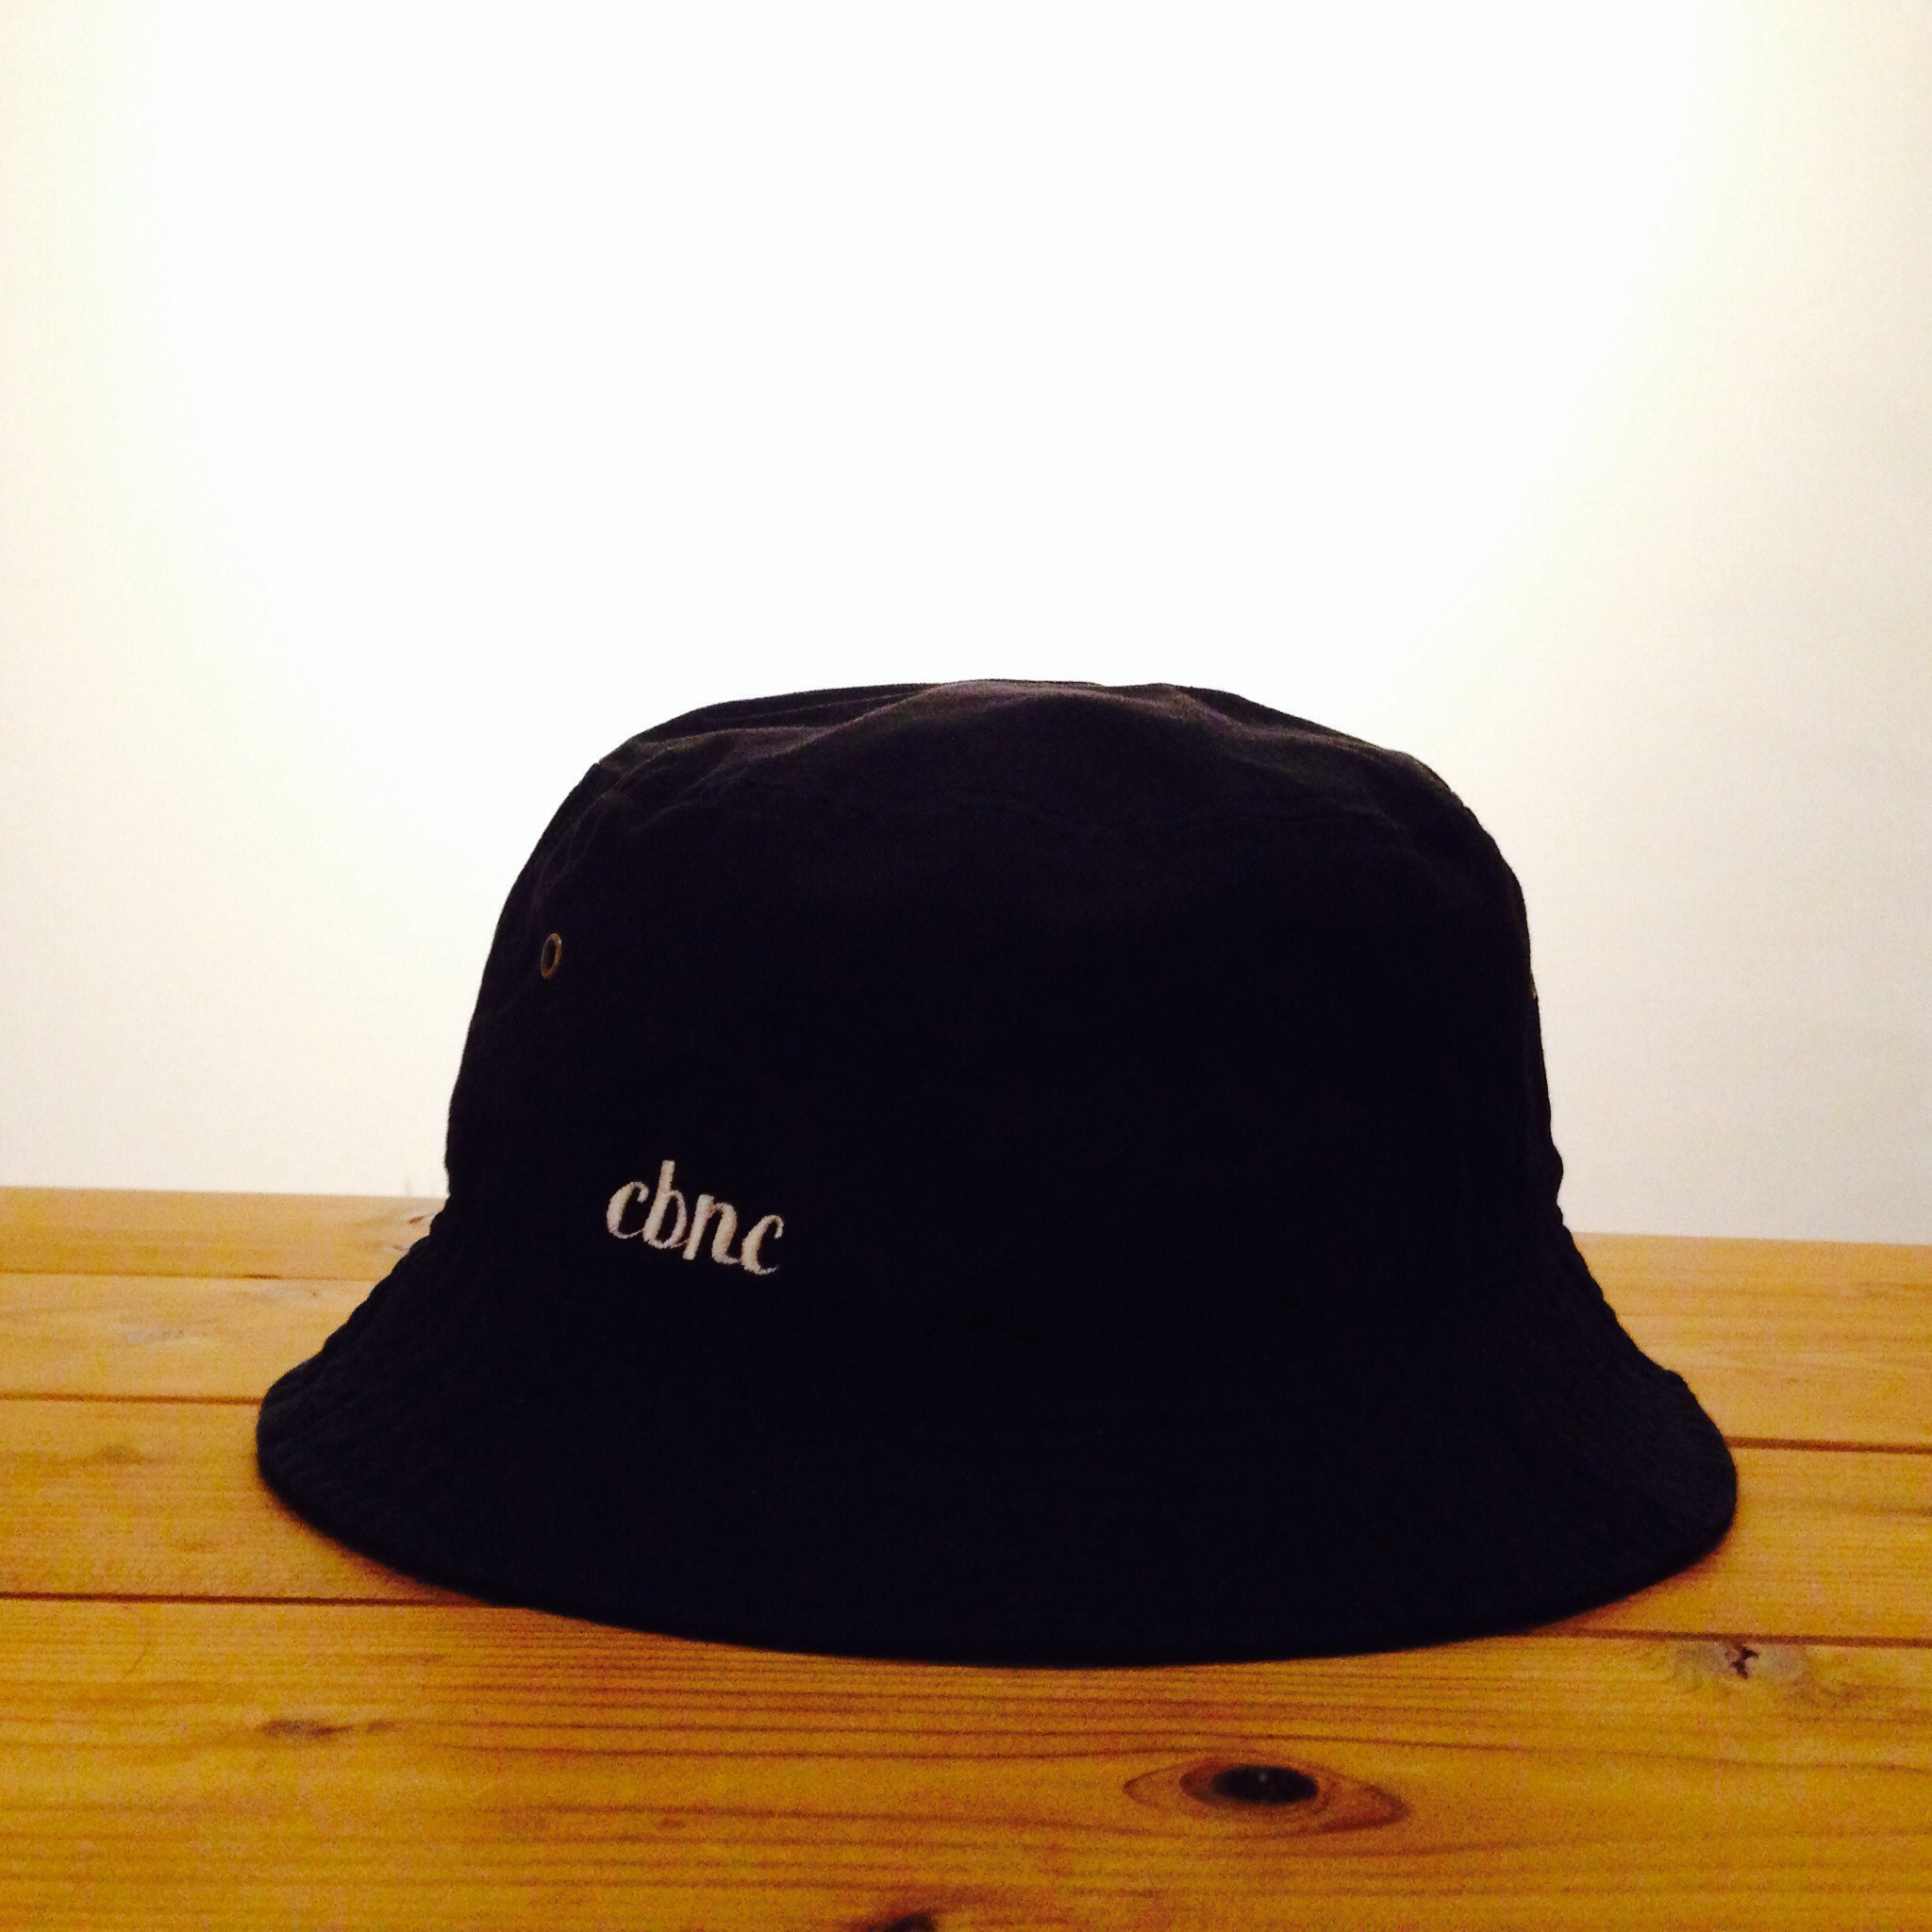 carbonic CBNC Backet Hat